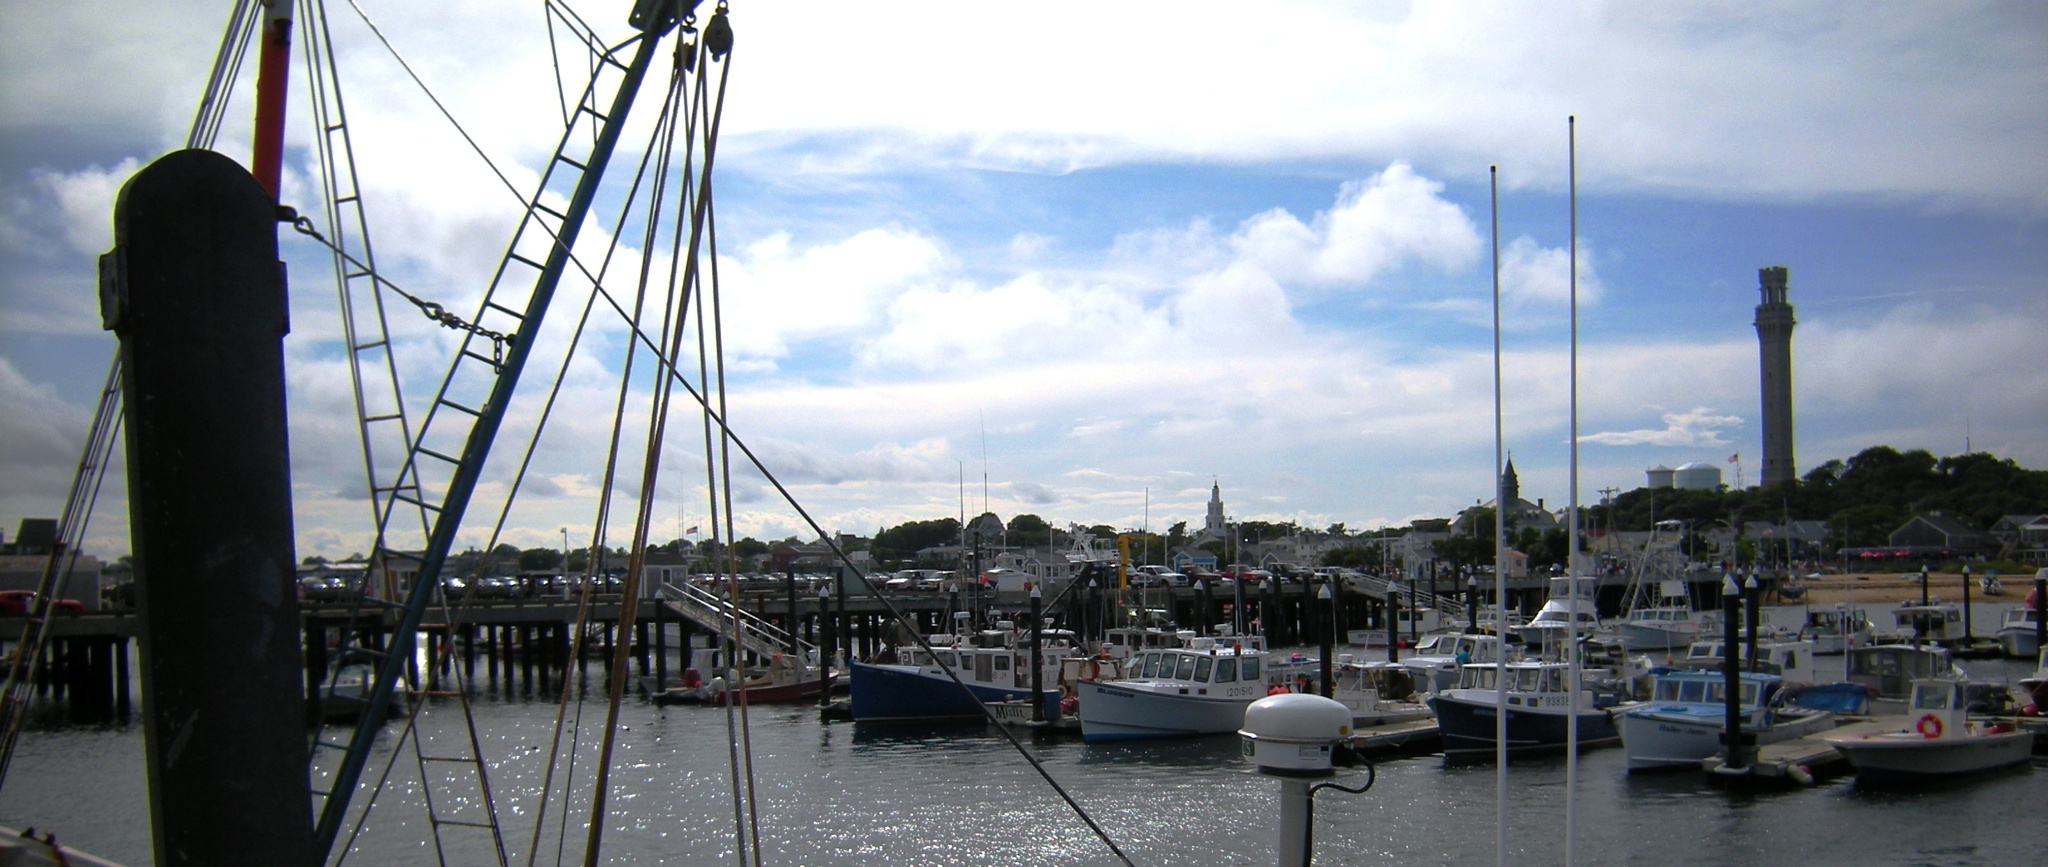 Provincetown by Miguelvillega